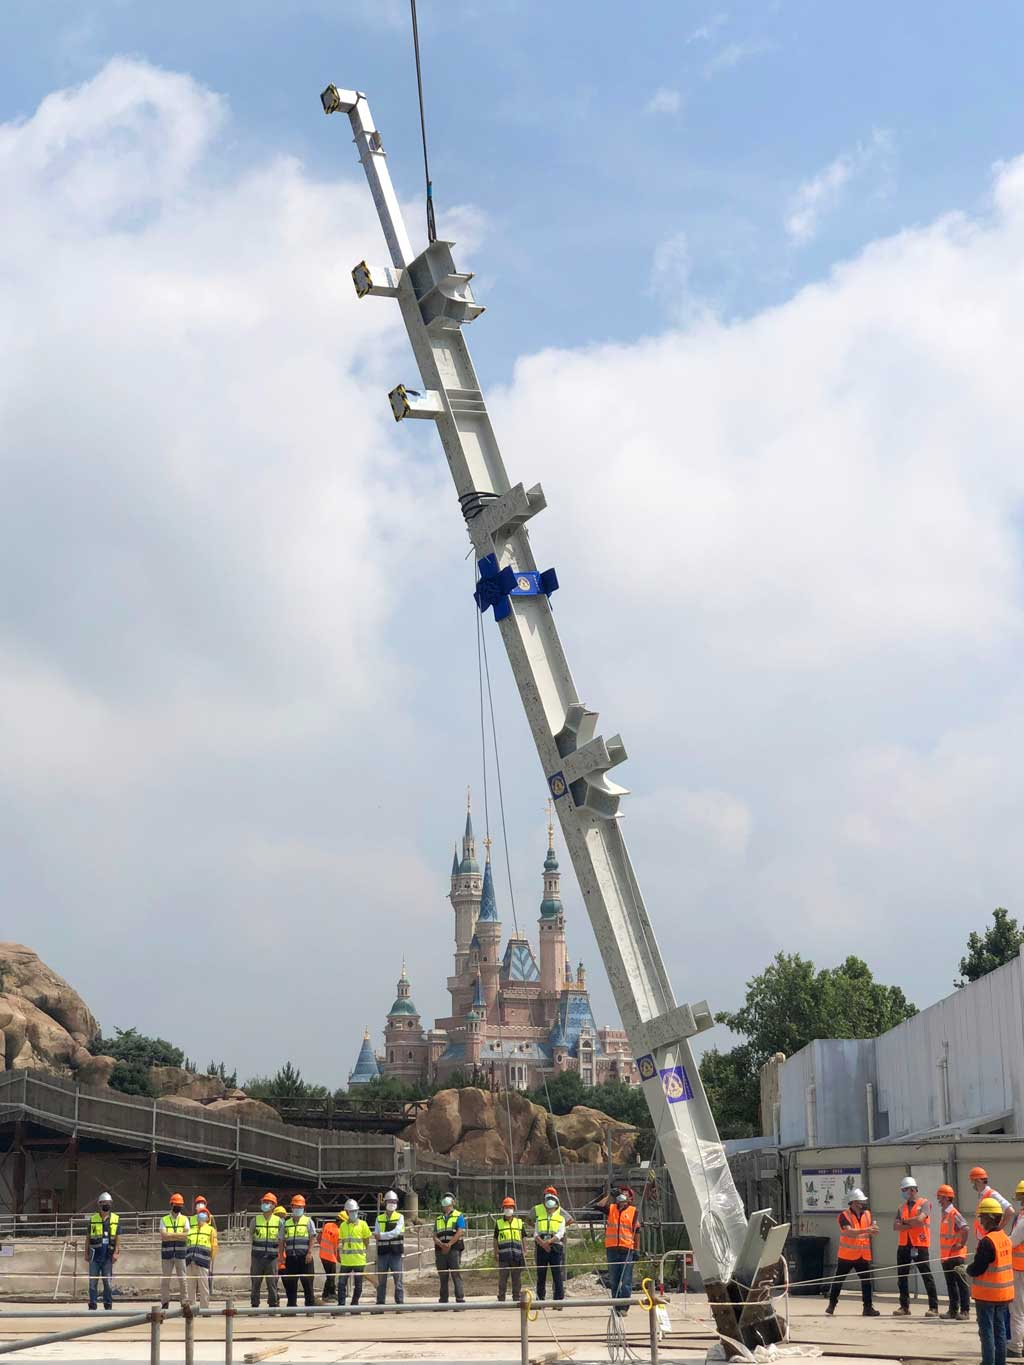 The first steel column was installed this morning, filled with thousands of Cast Members' and Imagineers' signatures